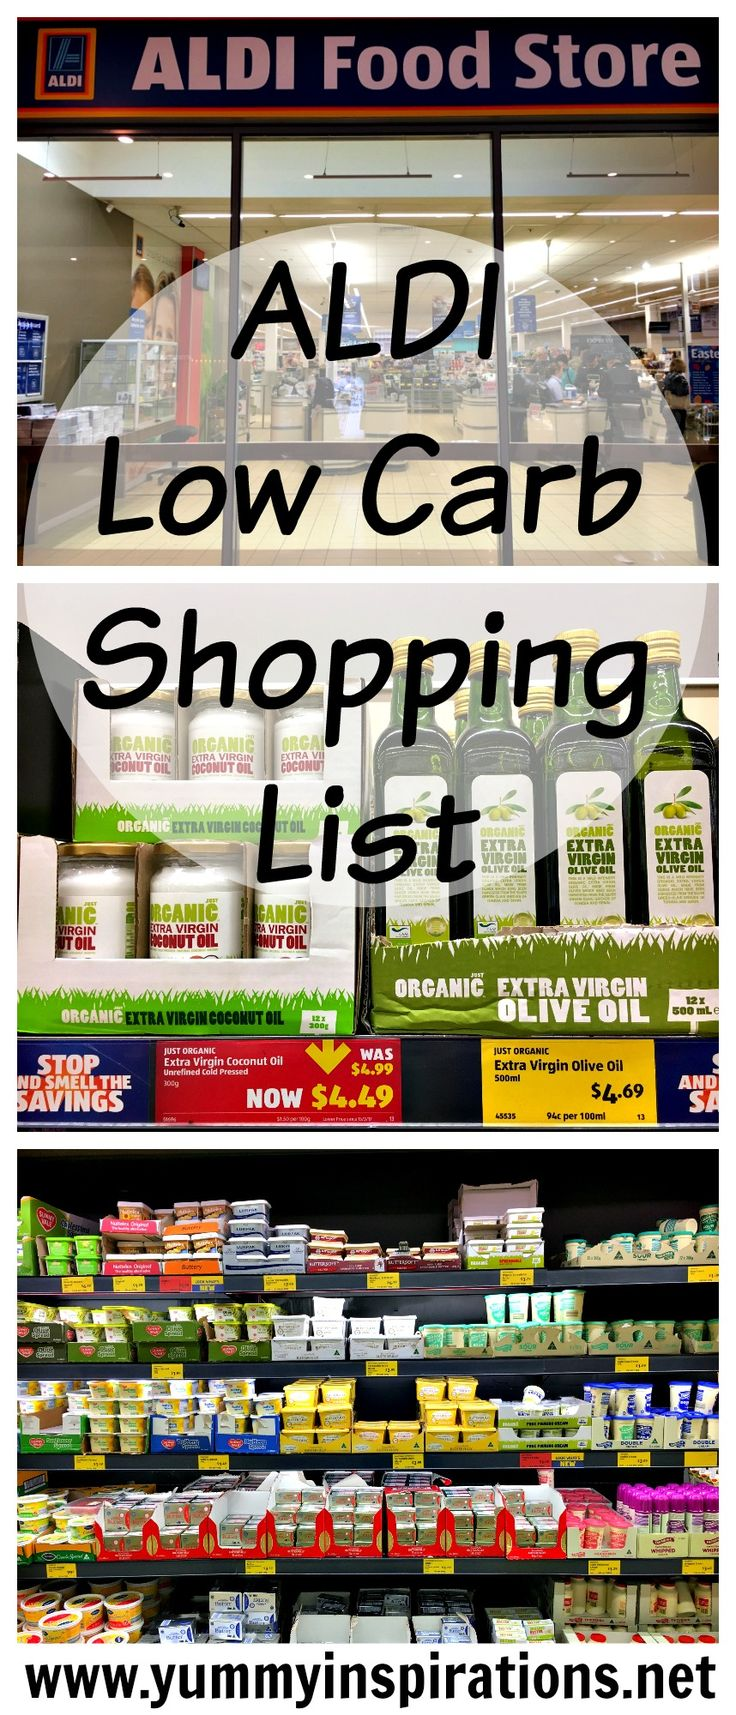 ALDI Low Carb Shopping List + Video Grocery HaulRose Hoerner